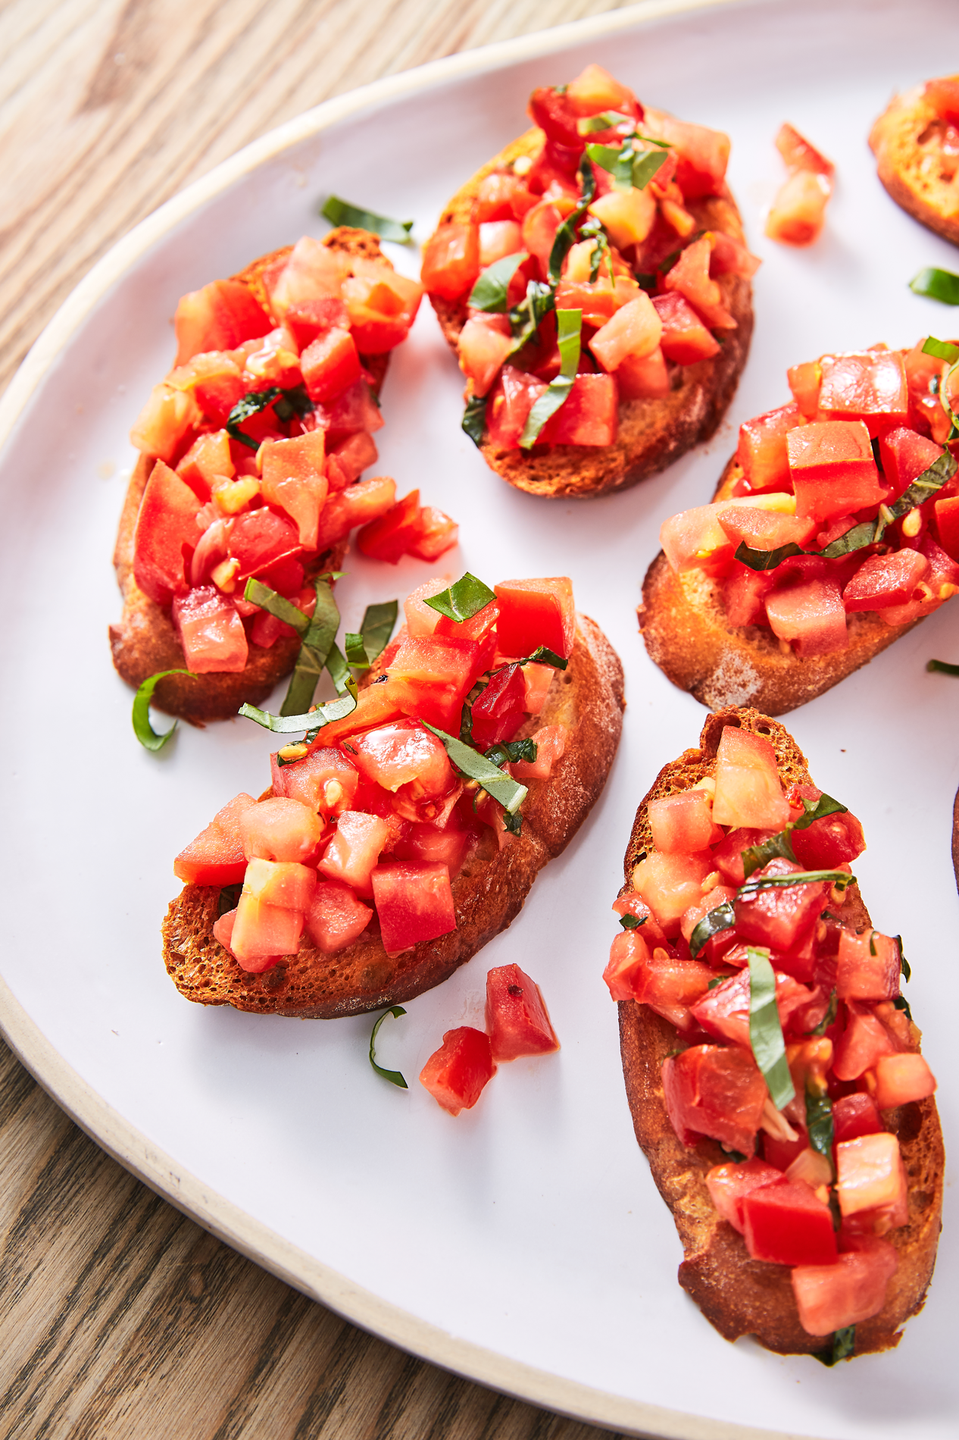 """<p>Use up the last of those juicy summer tomatoes with this easy bruschetta.</p><p>Get the recipe from <a href=""""https://www.delish.com/cooking/recipe-ideas/a27409128/best-bruschetta-tomato-recipe/"""" rel=""""nofollow noopener"""" target=""""_blank"""" data-ylk=""""slk:Delish"""" class=""""link rapid-noclick-resp"""">Delish</a>.<br></p>"""